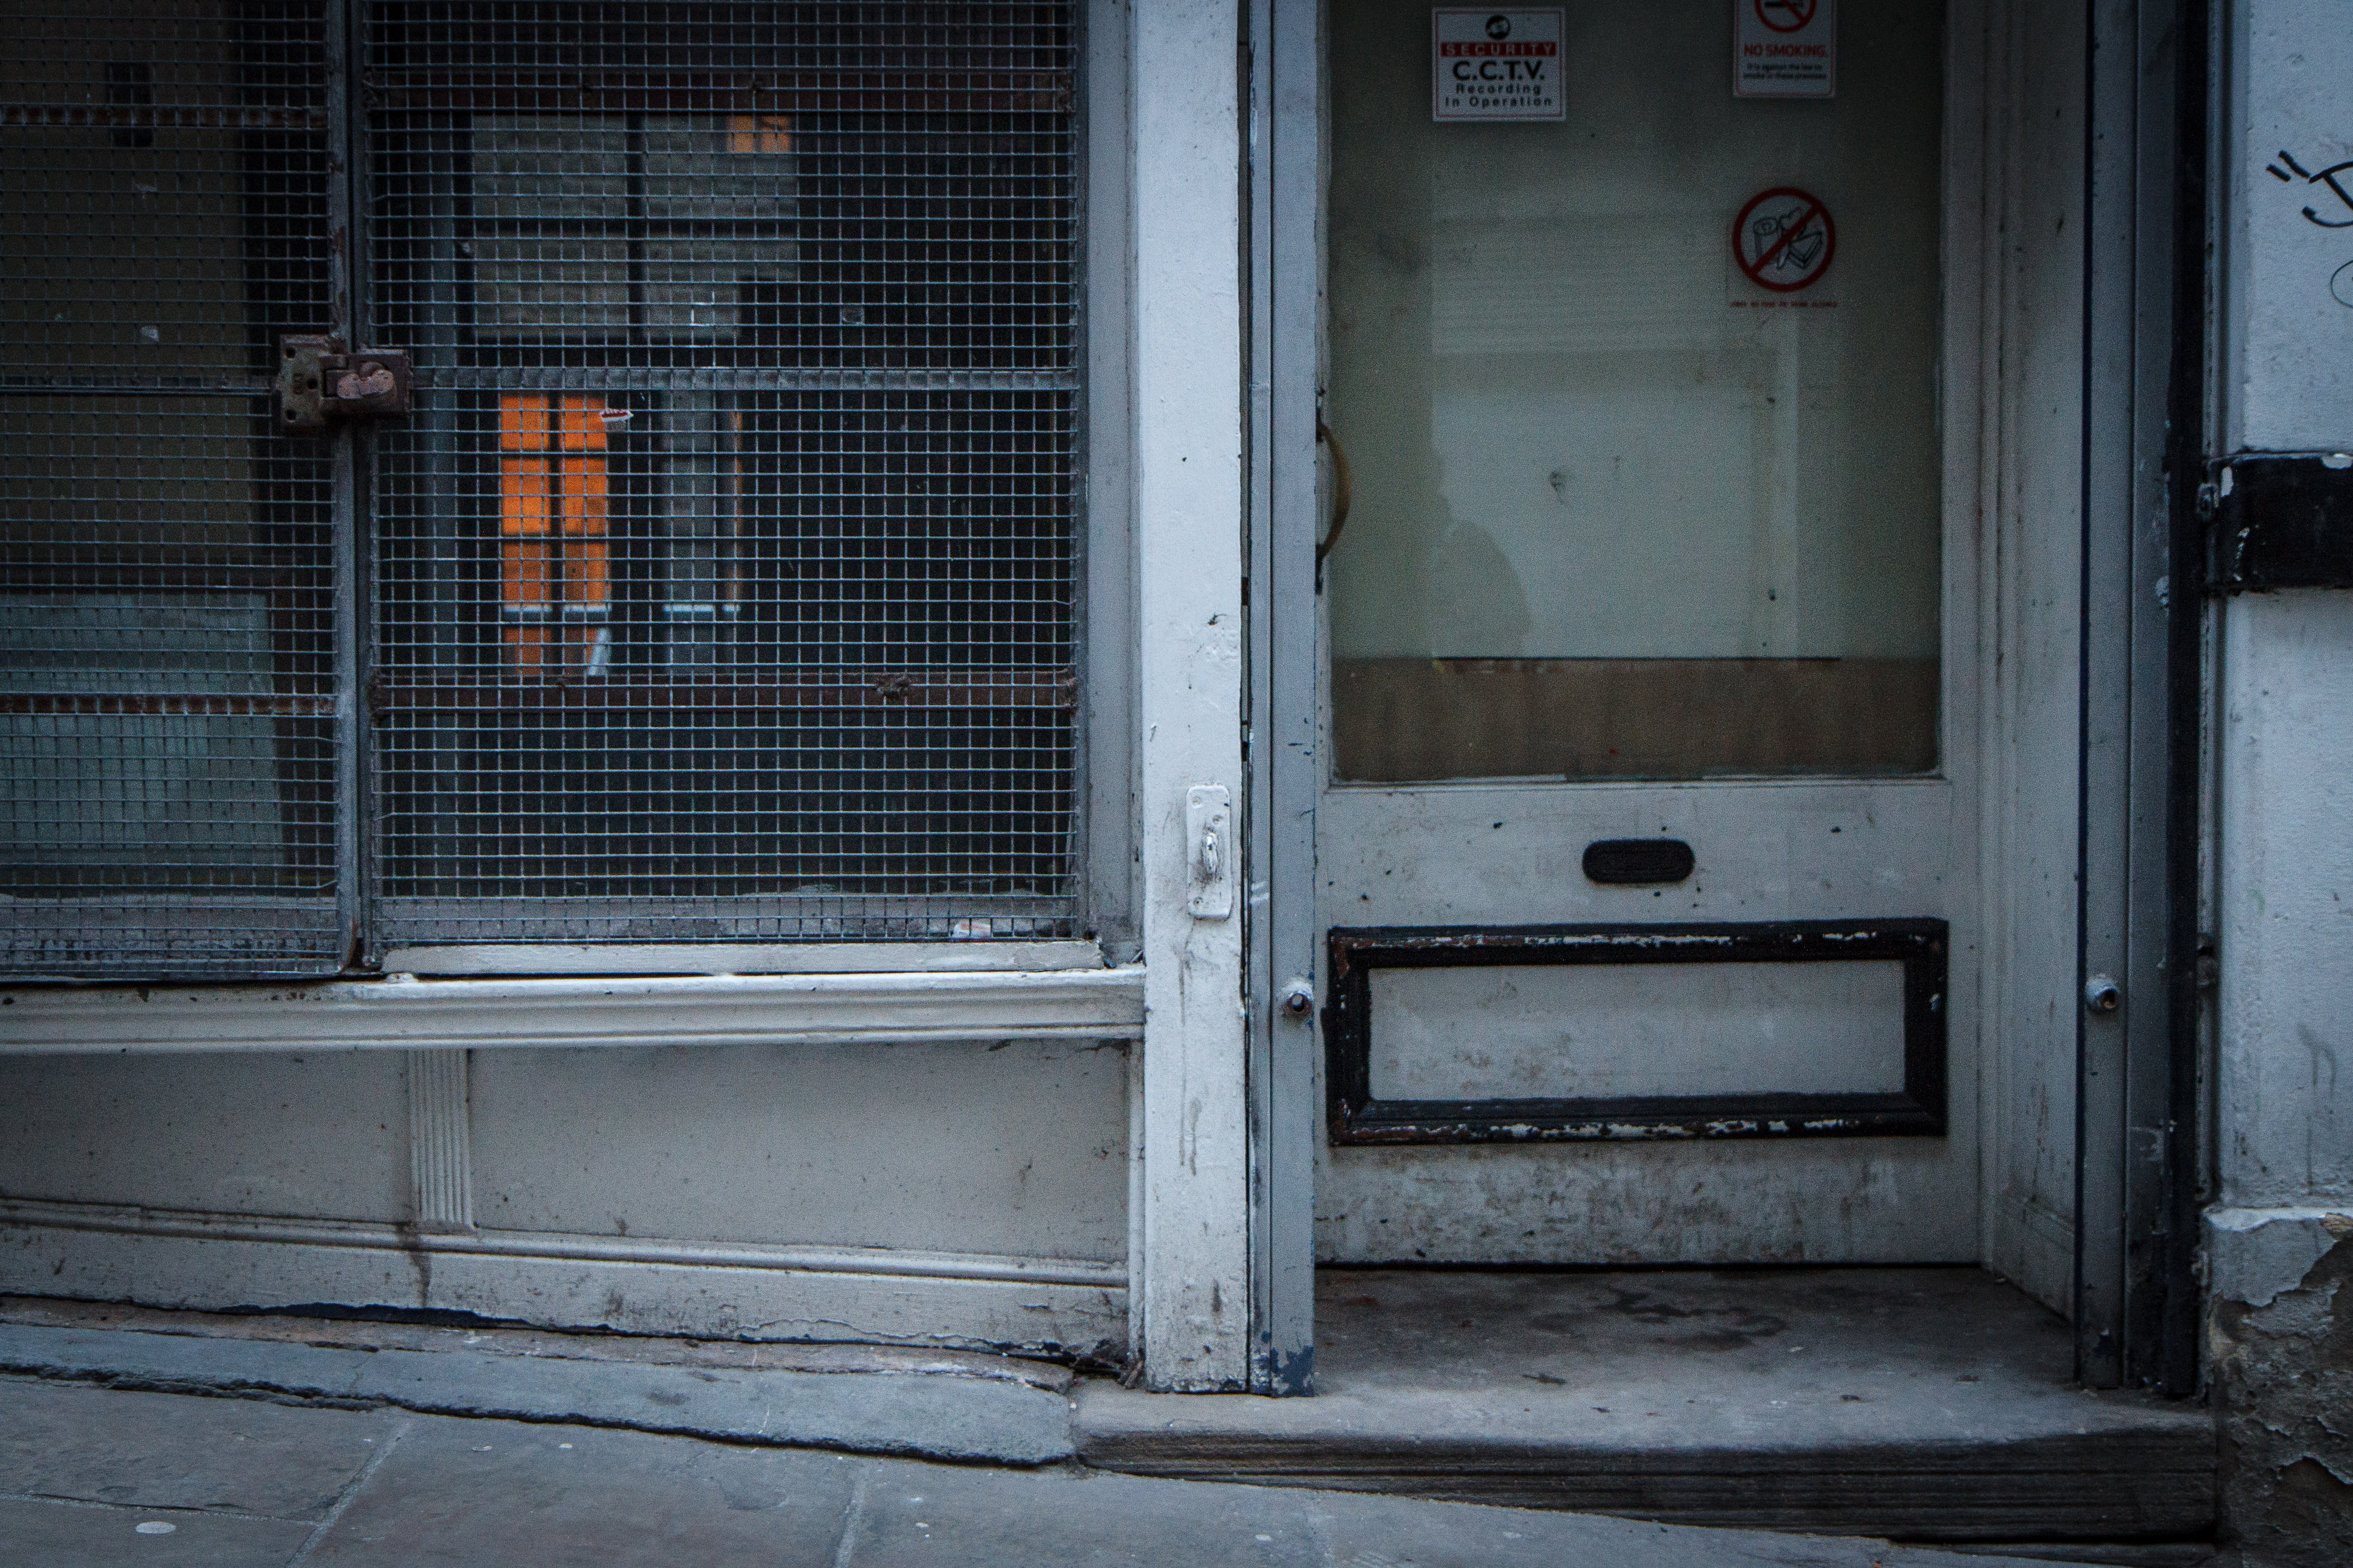 A vacant doorway where a homeless young person might sleep.